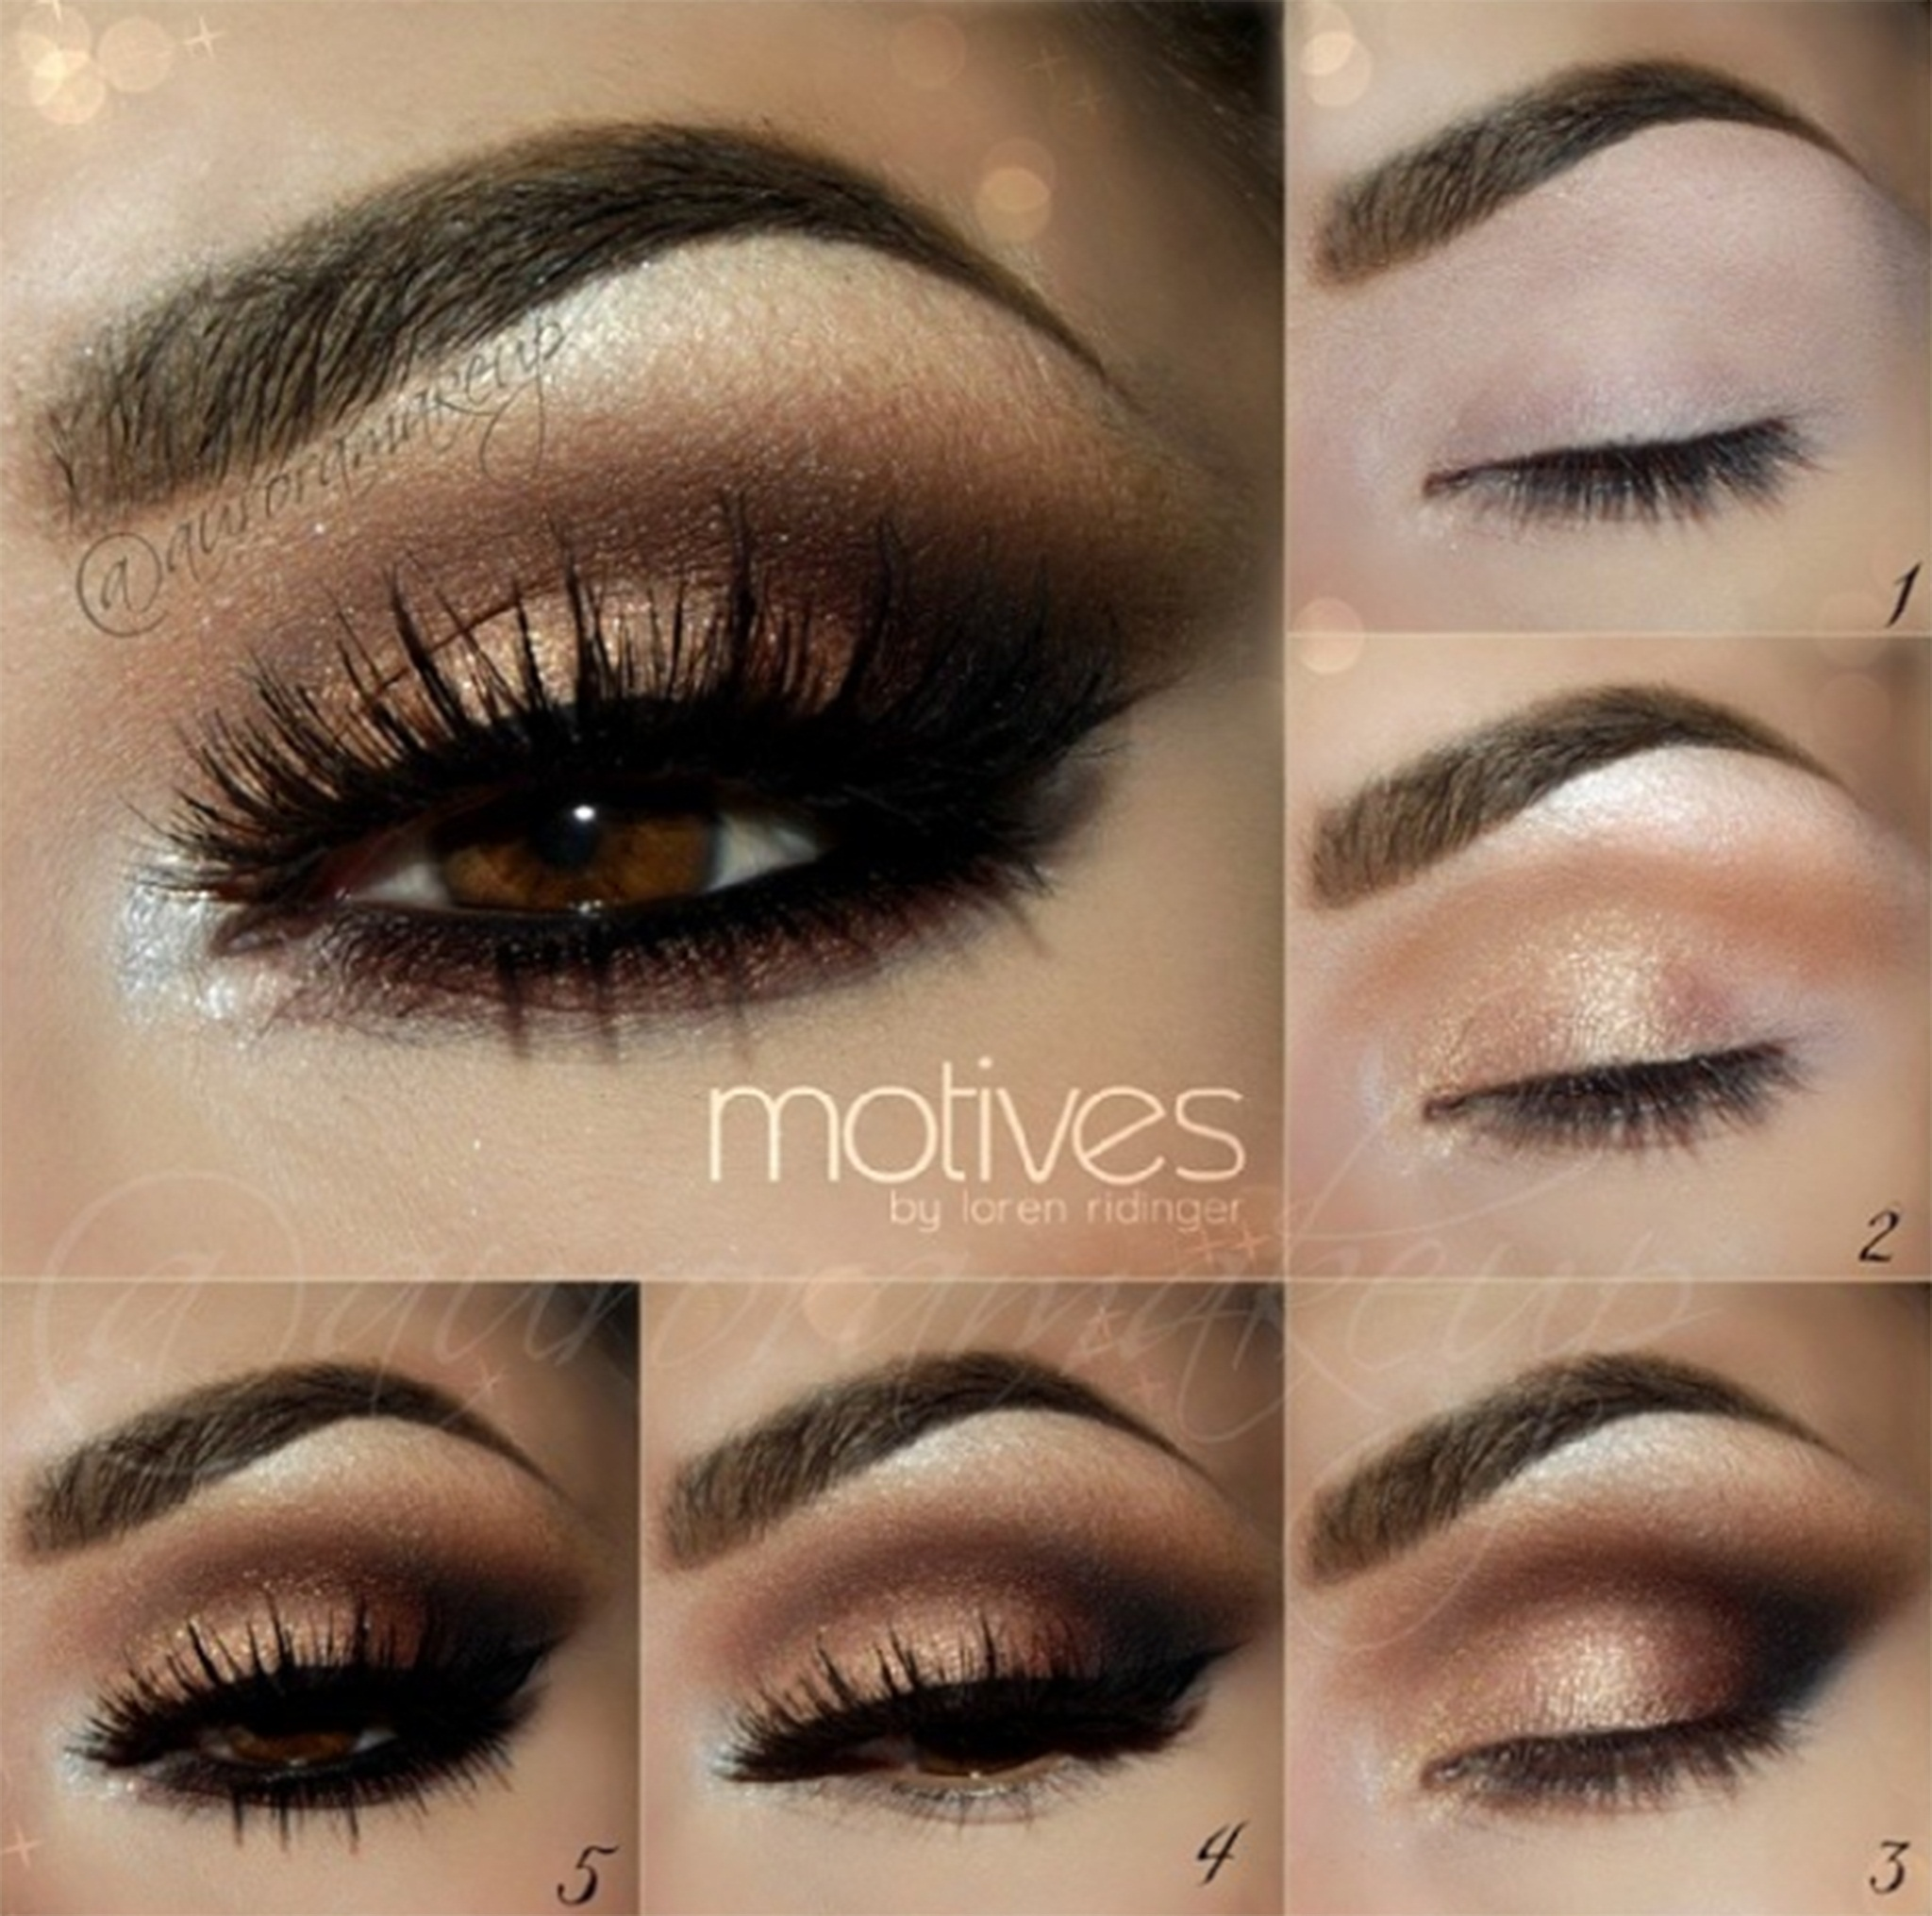 Smokey Eyes Makeup 5 Step By Step Smokey Eye Makeup Tutorials For Beginners